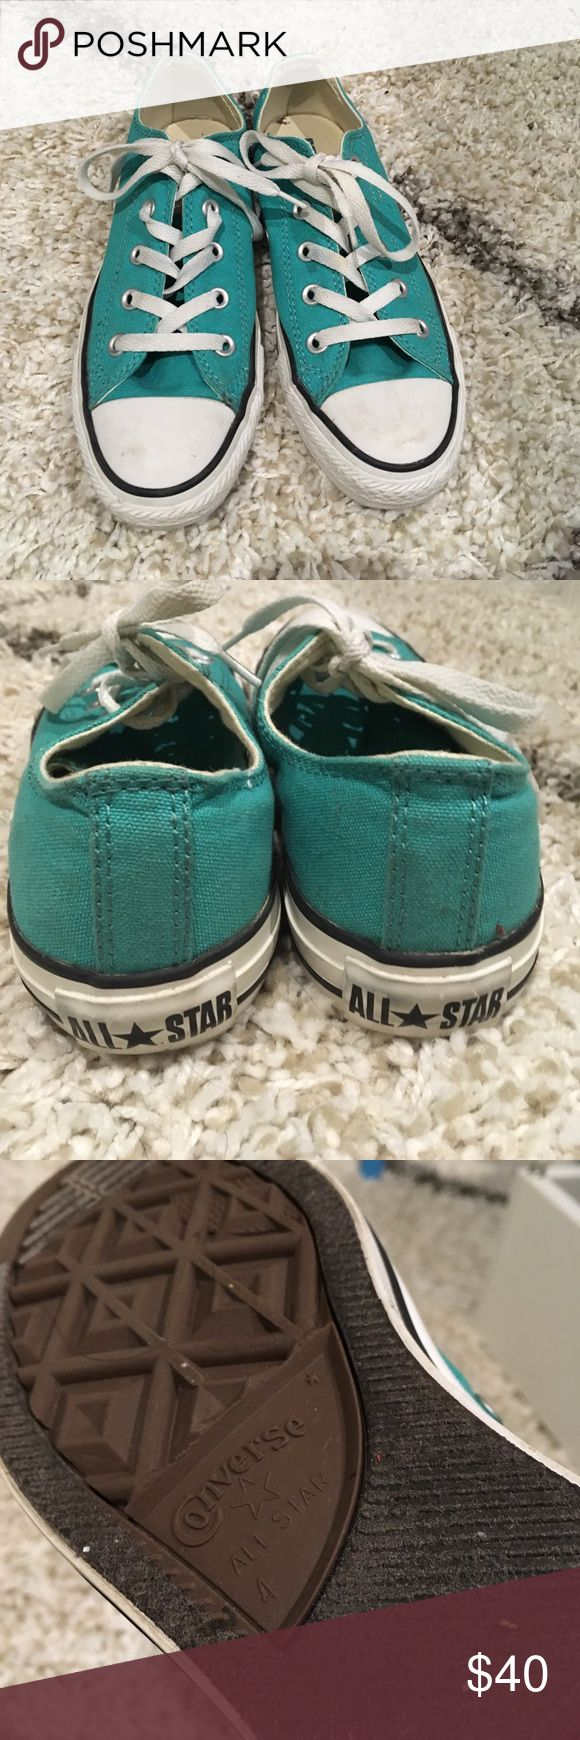 Turquoise Converse low top sneakers Worn 2x. Like new. Men's 4, Women's 6 Converse Shoes Sneakers